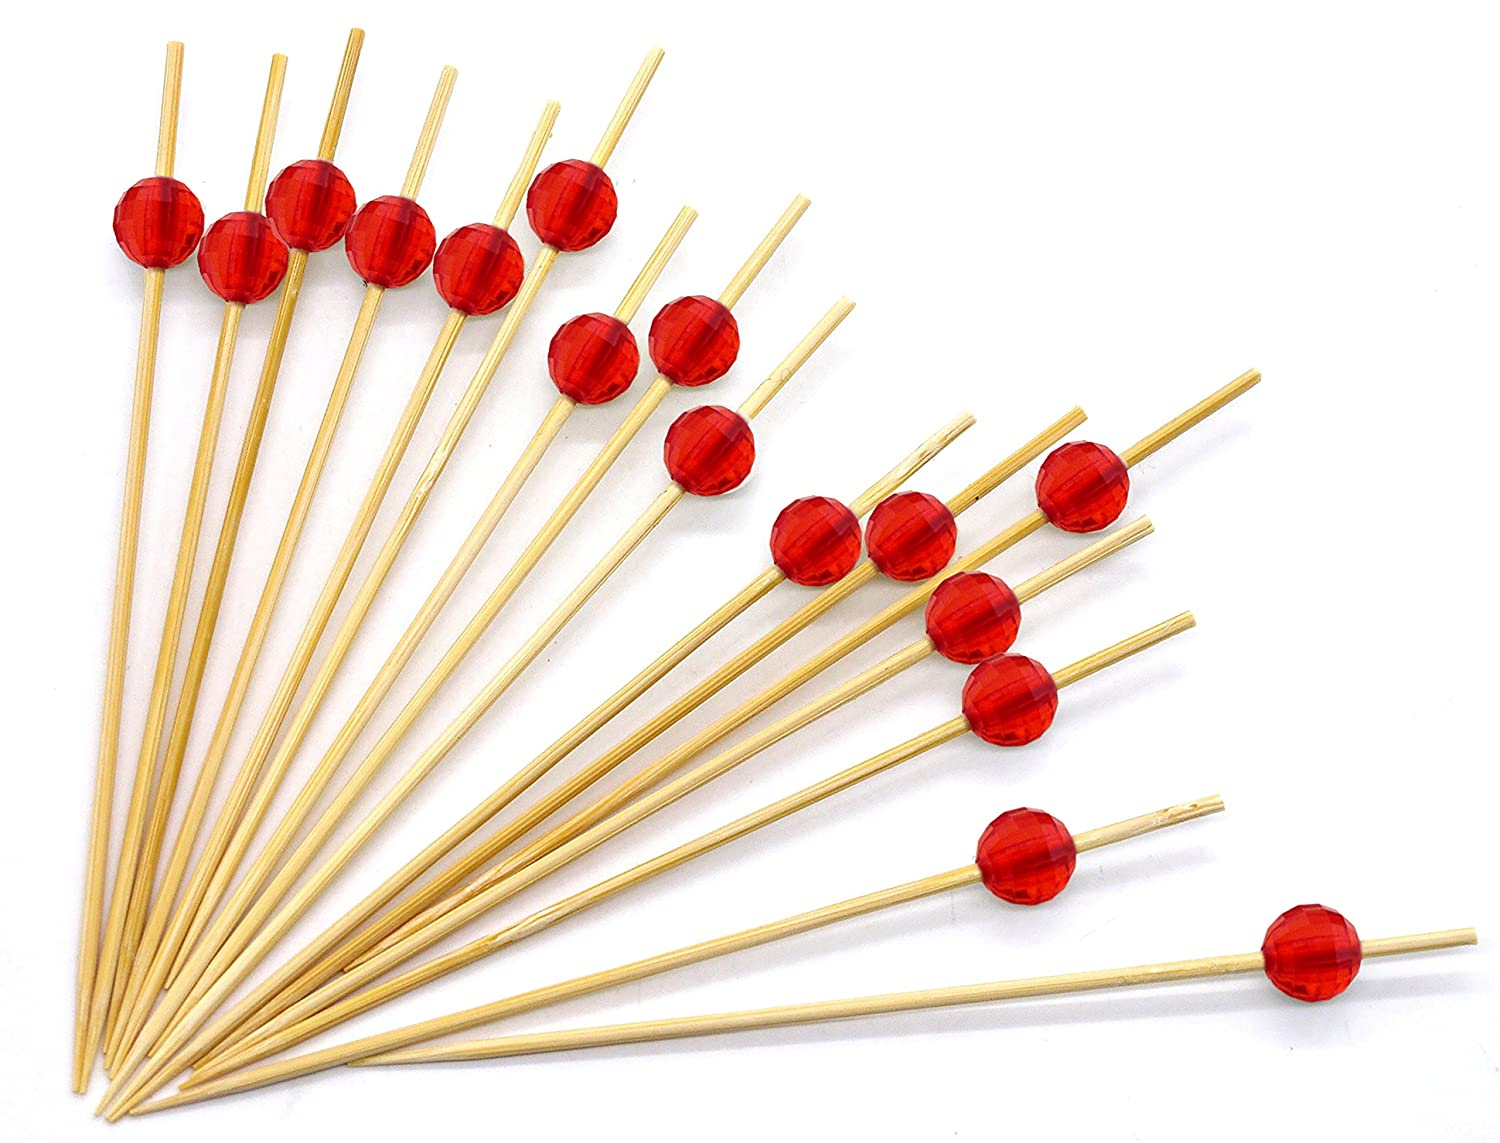 4.7 Red Bamboo Cocktail Ball Picks. Includes 300 Decorative Bamboo Cocktail Skewers With Red Shiny Beads. Great For Cocktail Parties, Hors D'oeuvres, Weddings, Receptions, Holidays And Much More!! Hors D' oeuvres Premium Disposables PD036-R